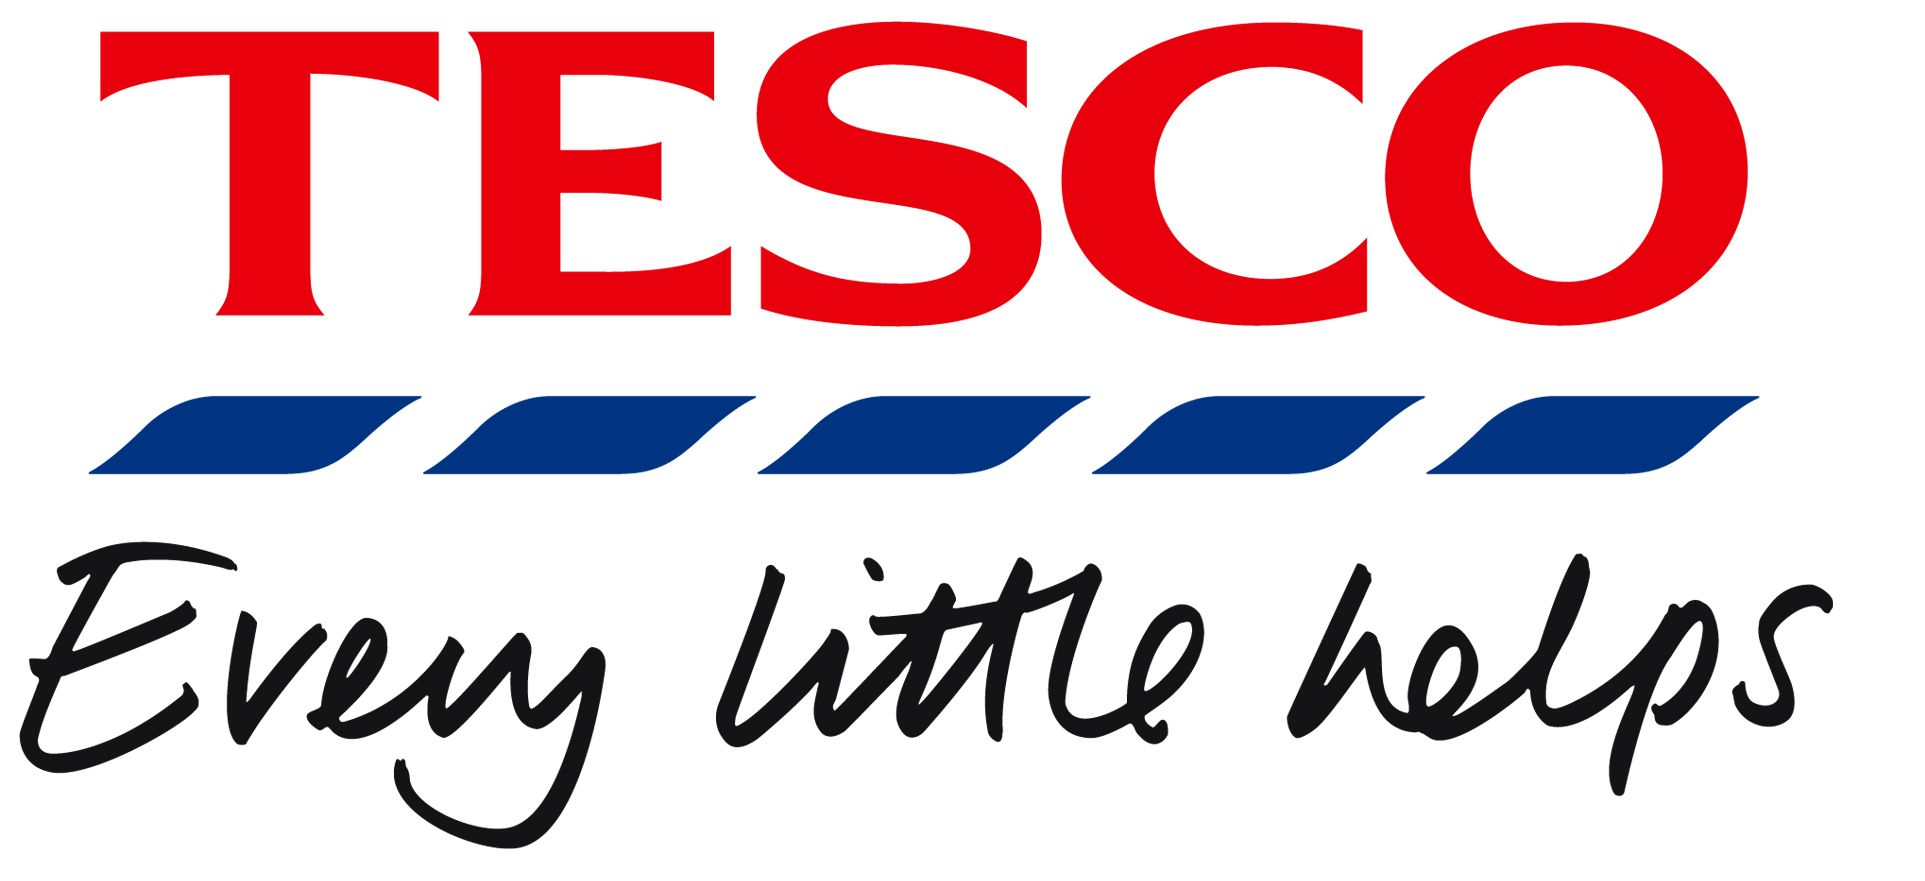 You'll need a Tesco Clubcard to shop at taboredesc.ga online or via our mobile app, but don't worry if you don't have one. When you register, you'll automatically be given a Clubcard number. This lets you earn Clubcard points on all your purchases when you shop online.